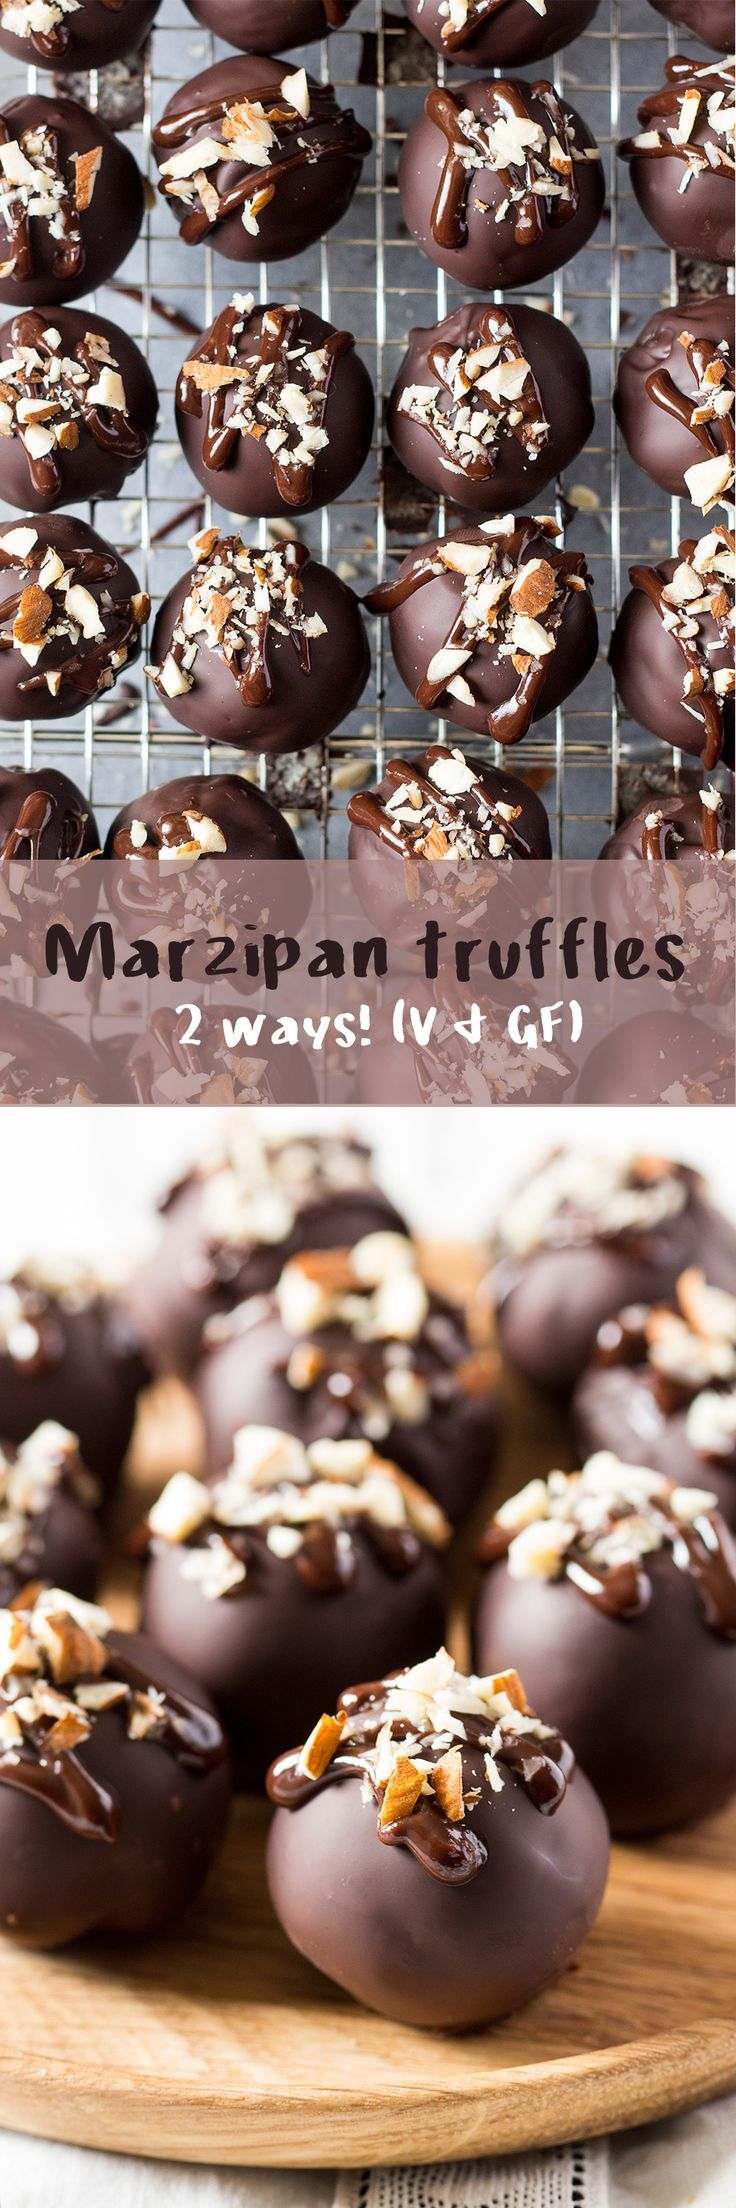 Vegan marzipan truffles – 2 ways These are to make and come in two varieties, including one. They're naturally and too!